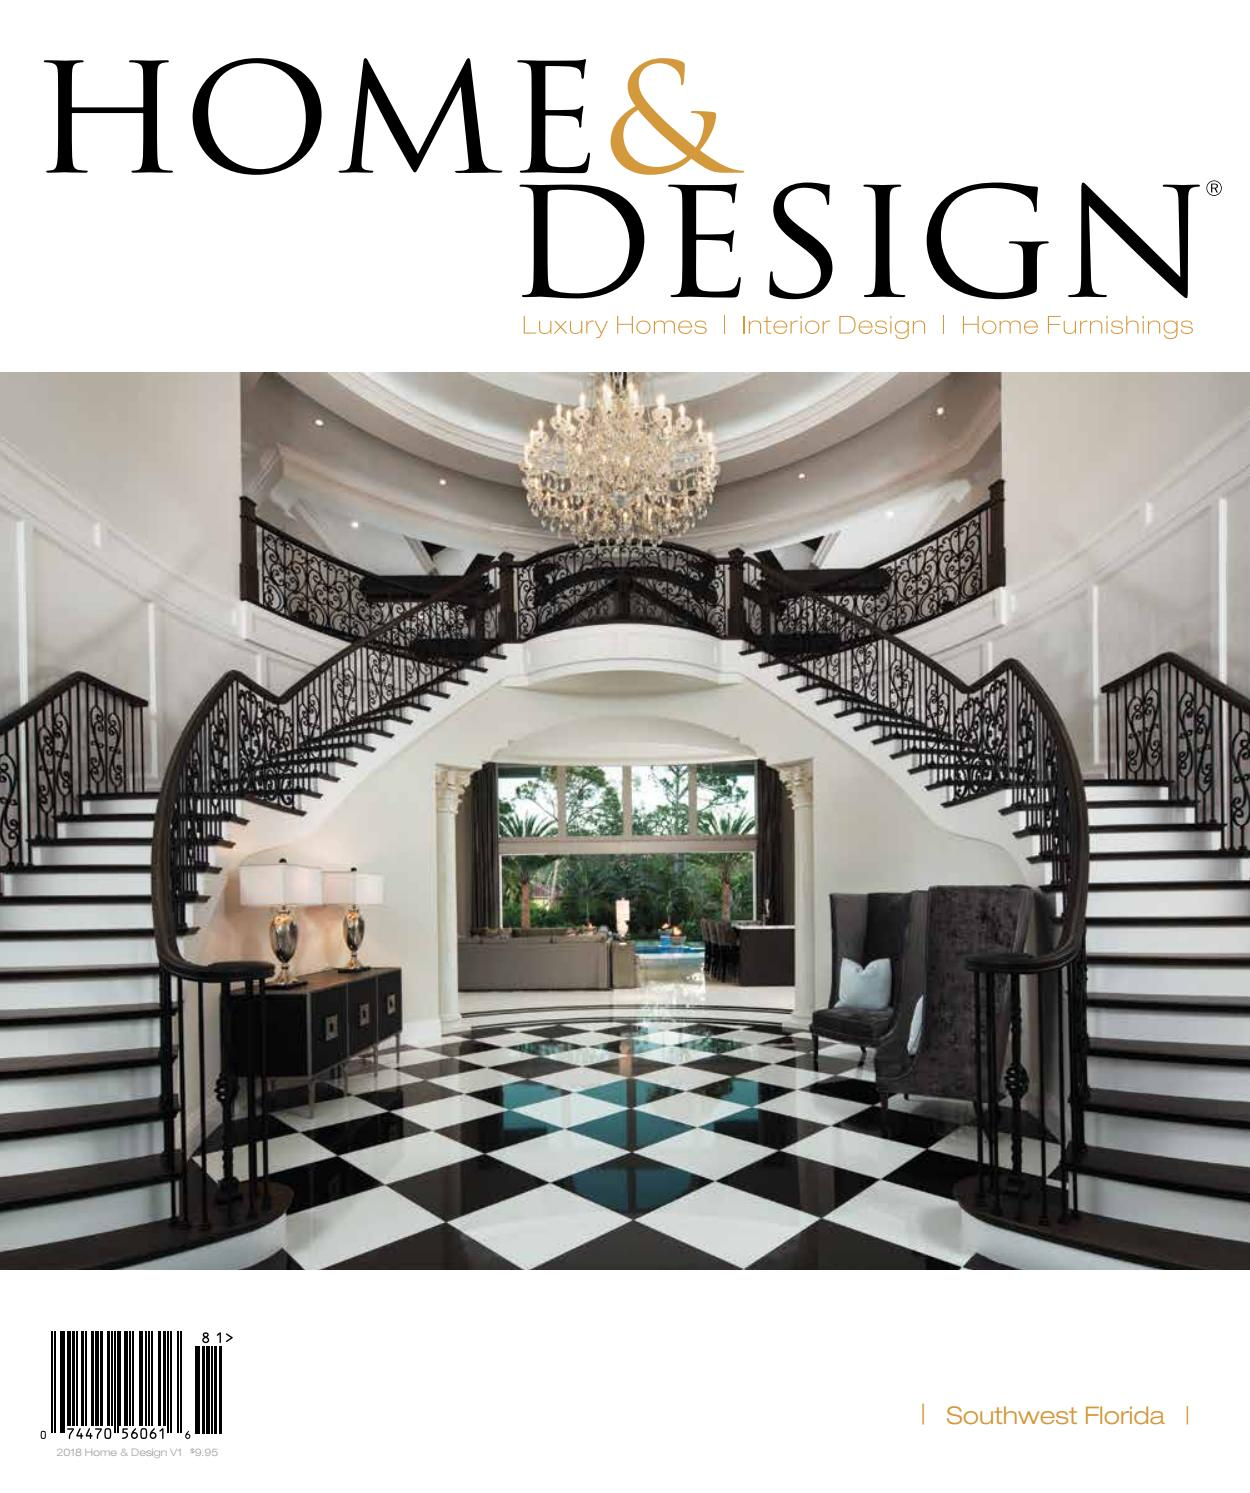 Küchen In U Form Bilder Home Design Magazine Southwest Florida Edition 2018